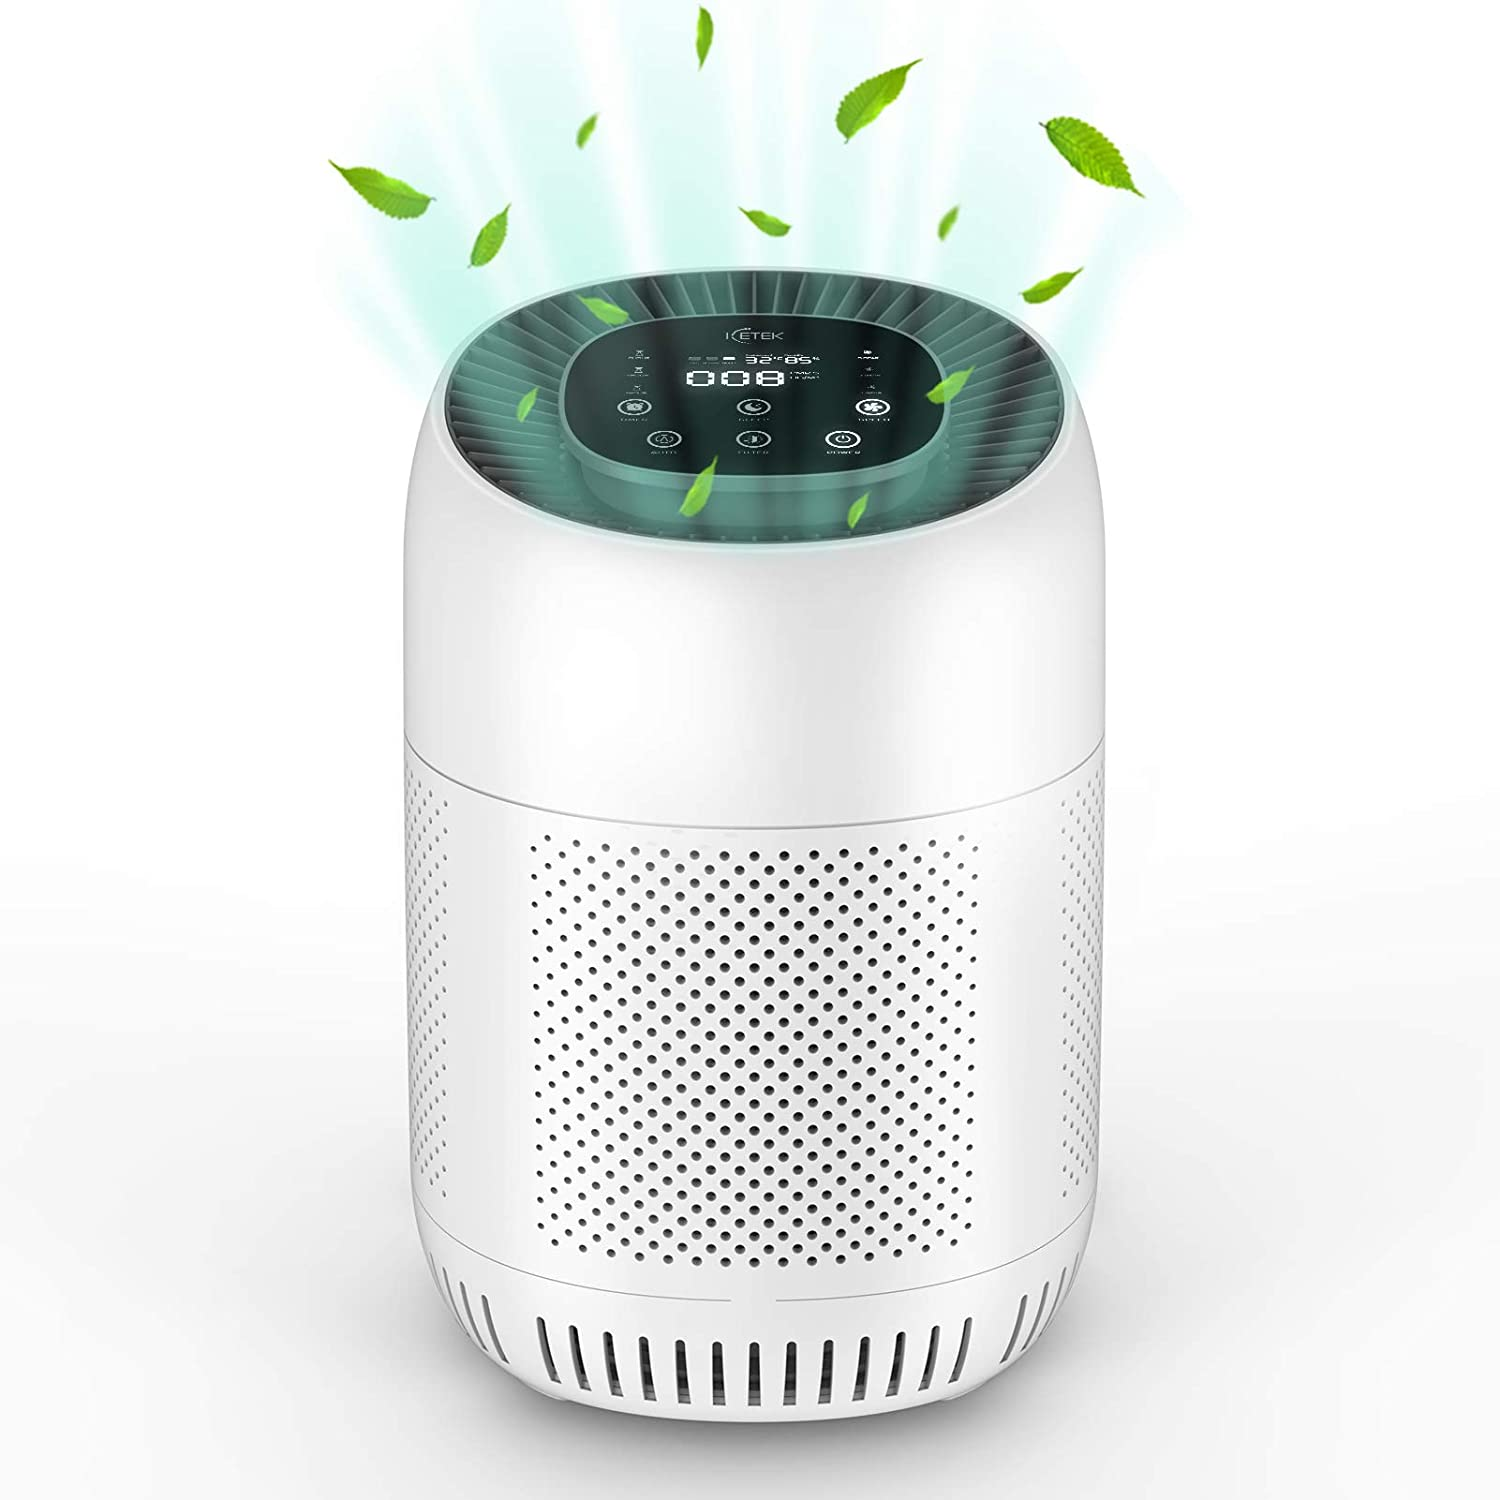 HEPA Air Purifiers for Home,ICETEK True H13 Personal Air Purifier With 4 Stage Filtration and Activated Carbon Filter Removes 99.97% of Smoke,Dust Odor,Pollen for Bedroom, Living Room,Office 215 Sq.ft